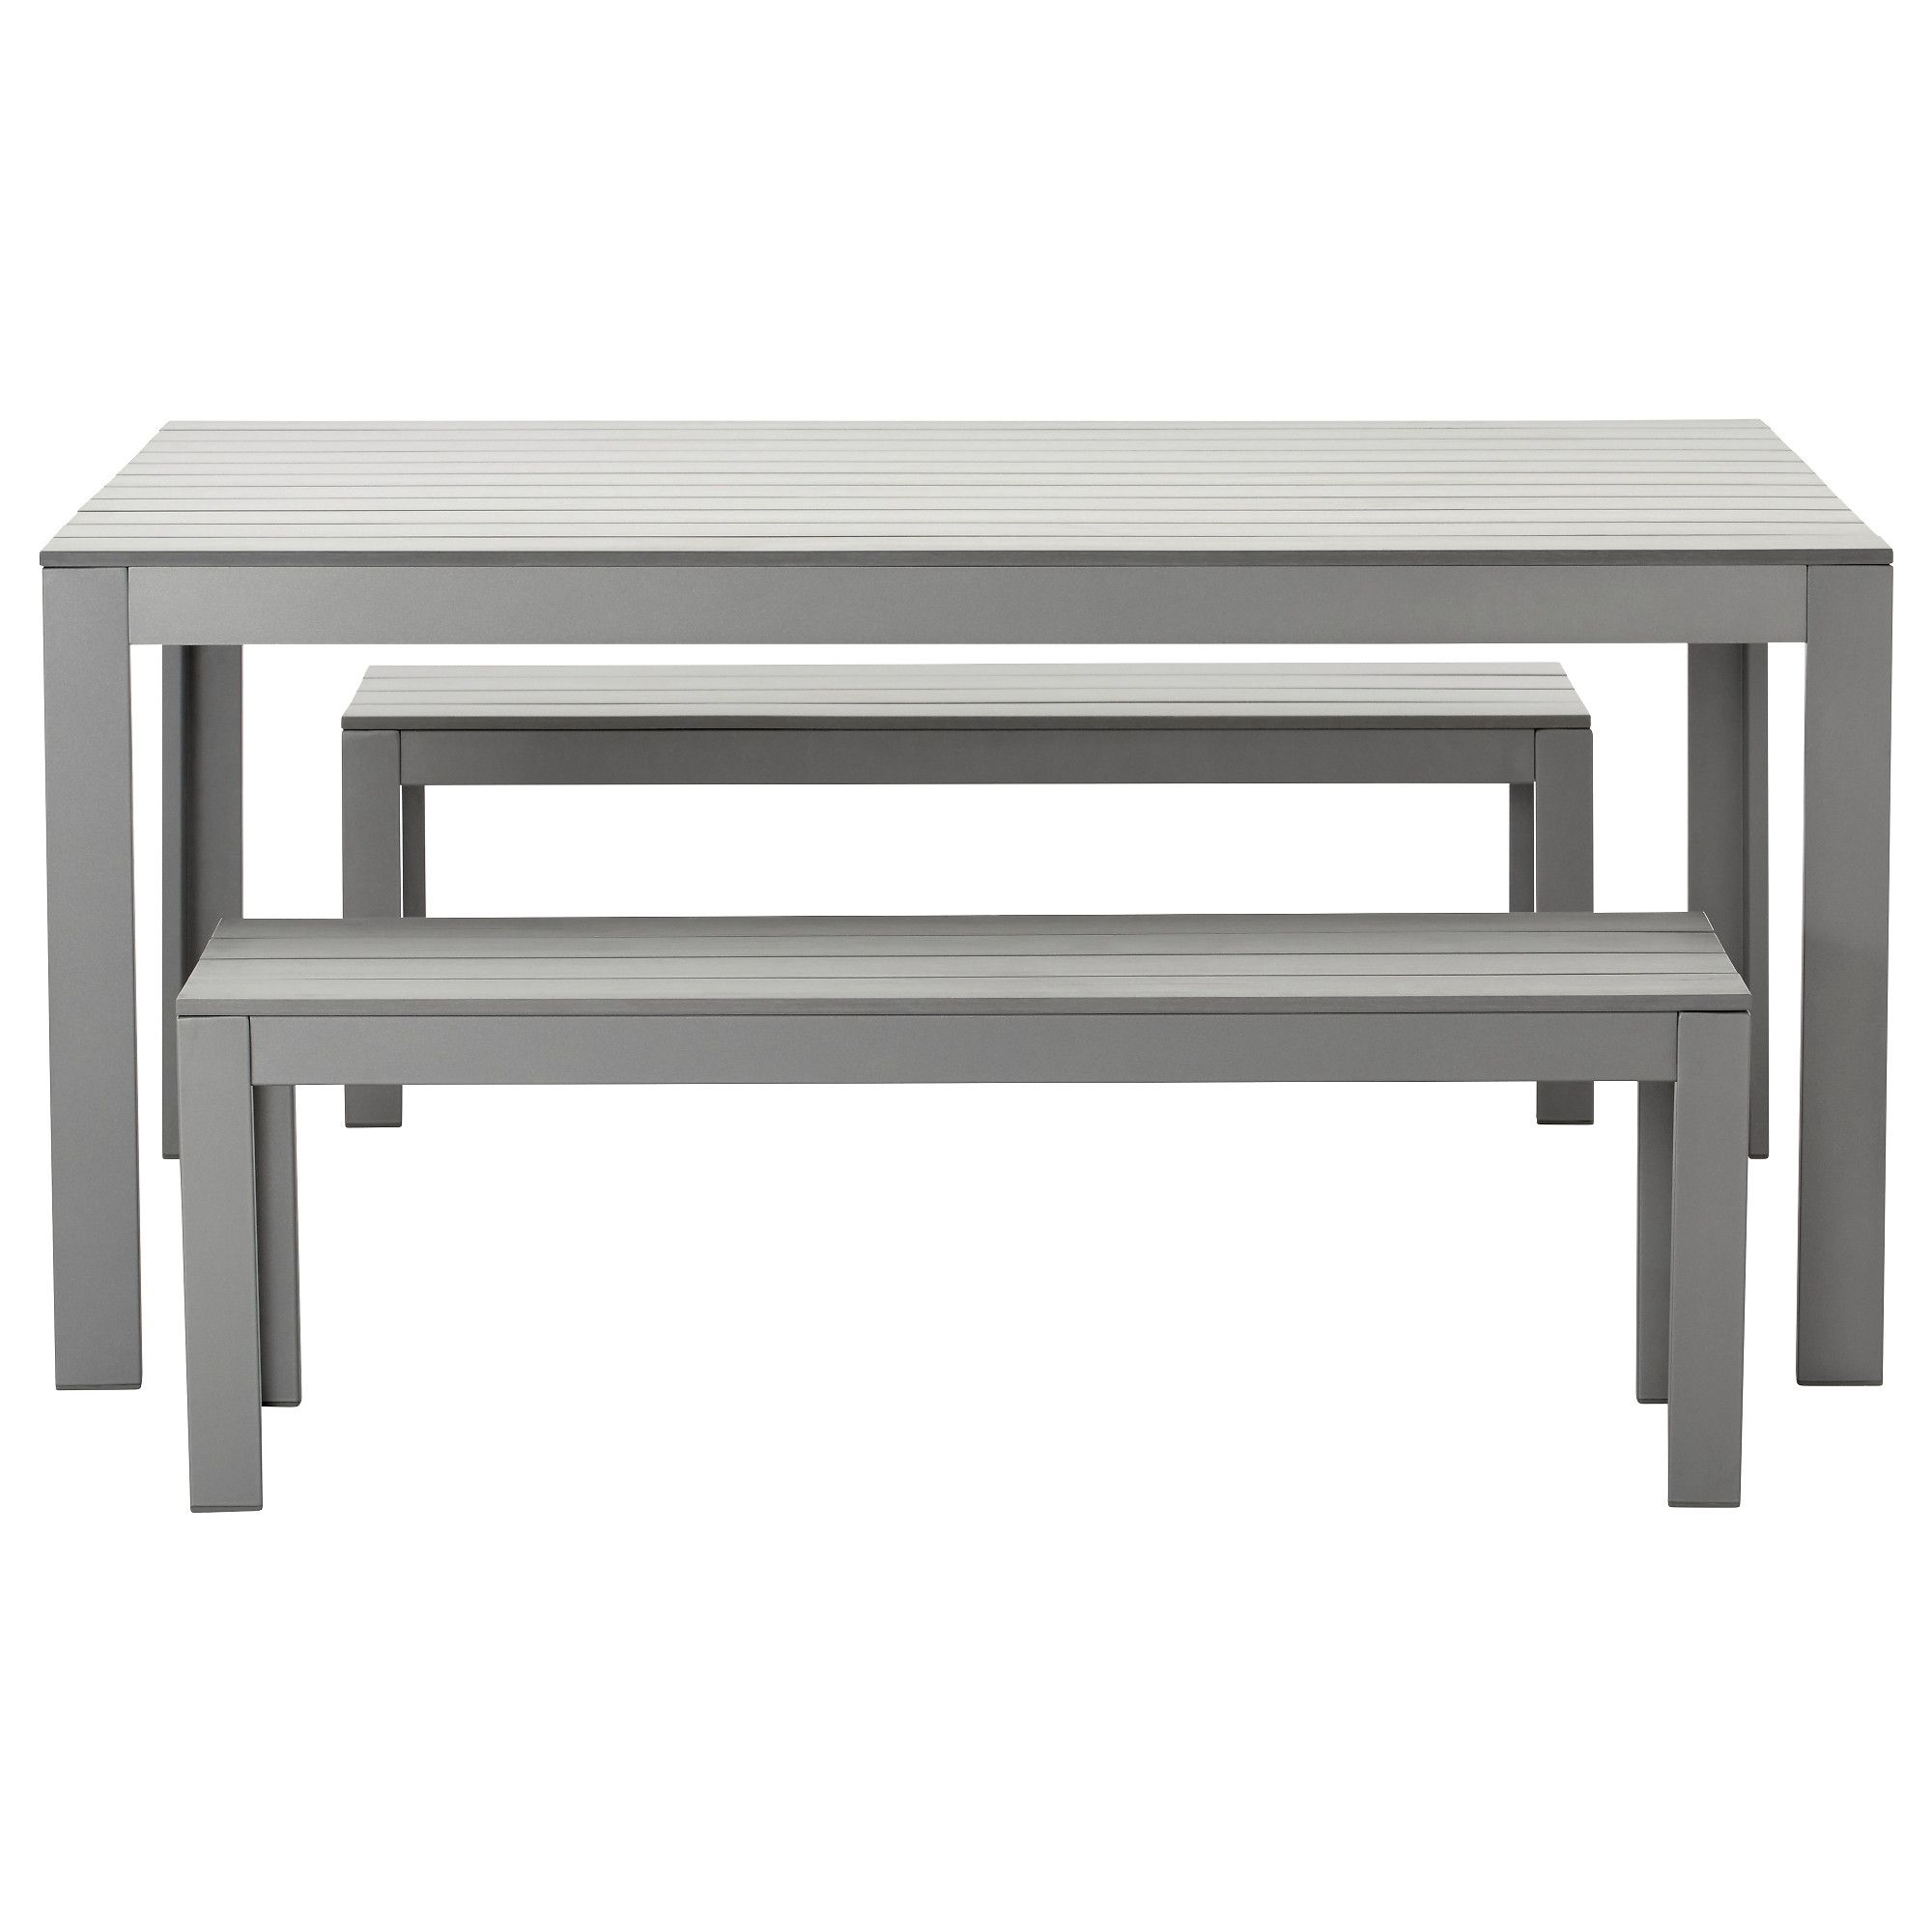 Stunning ikea table bench falster table 2 benches outdoor